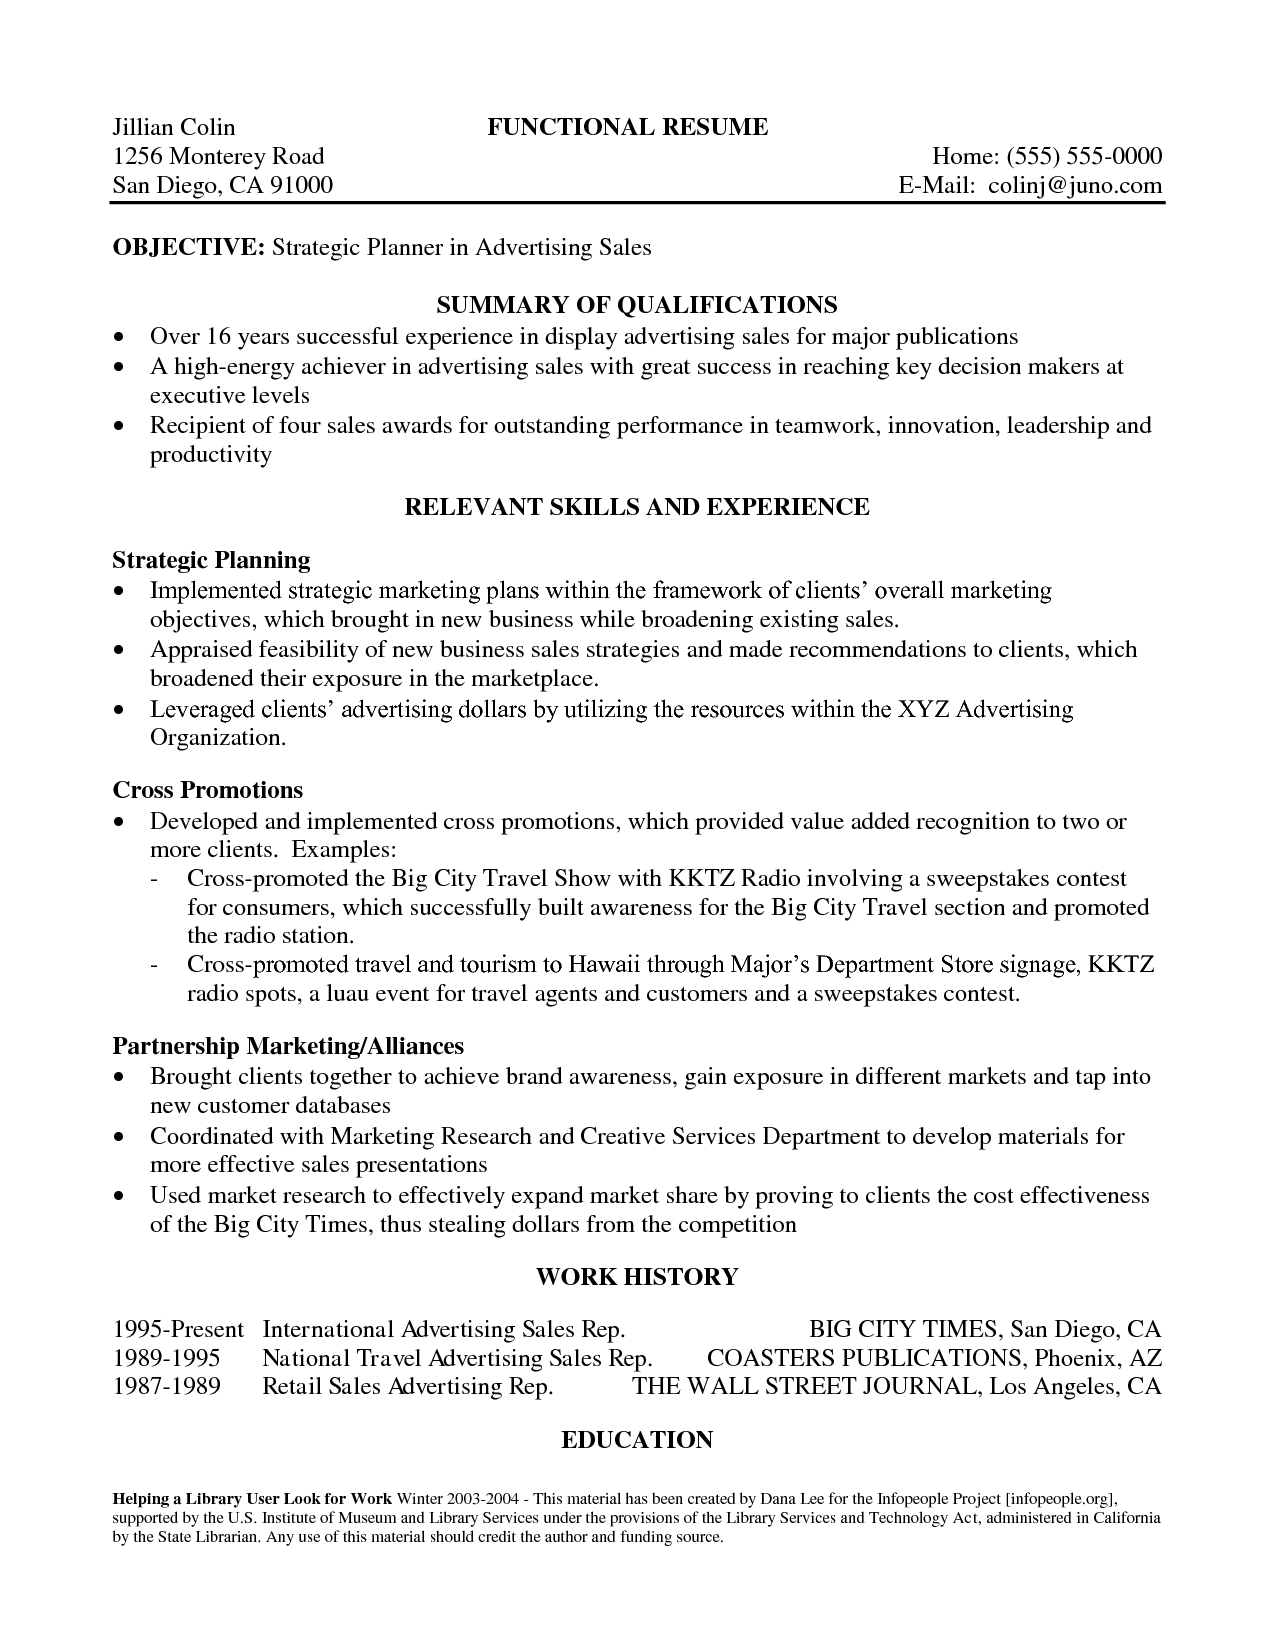 summary for resume